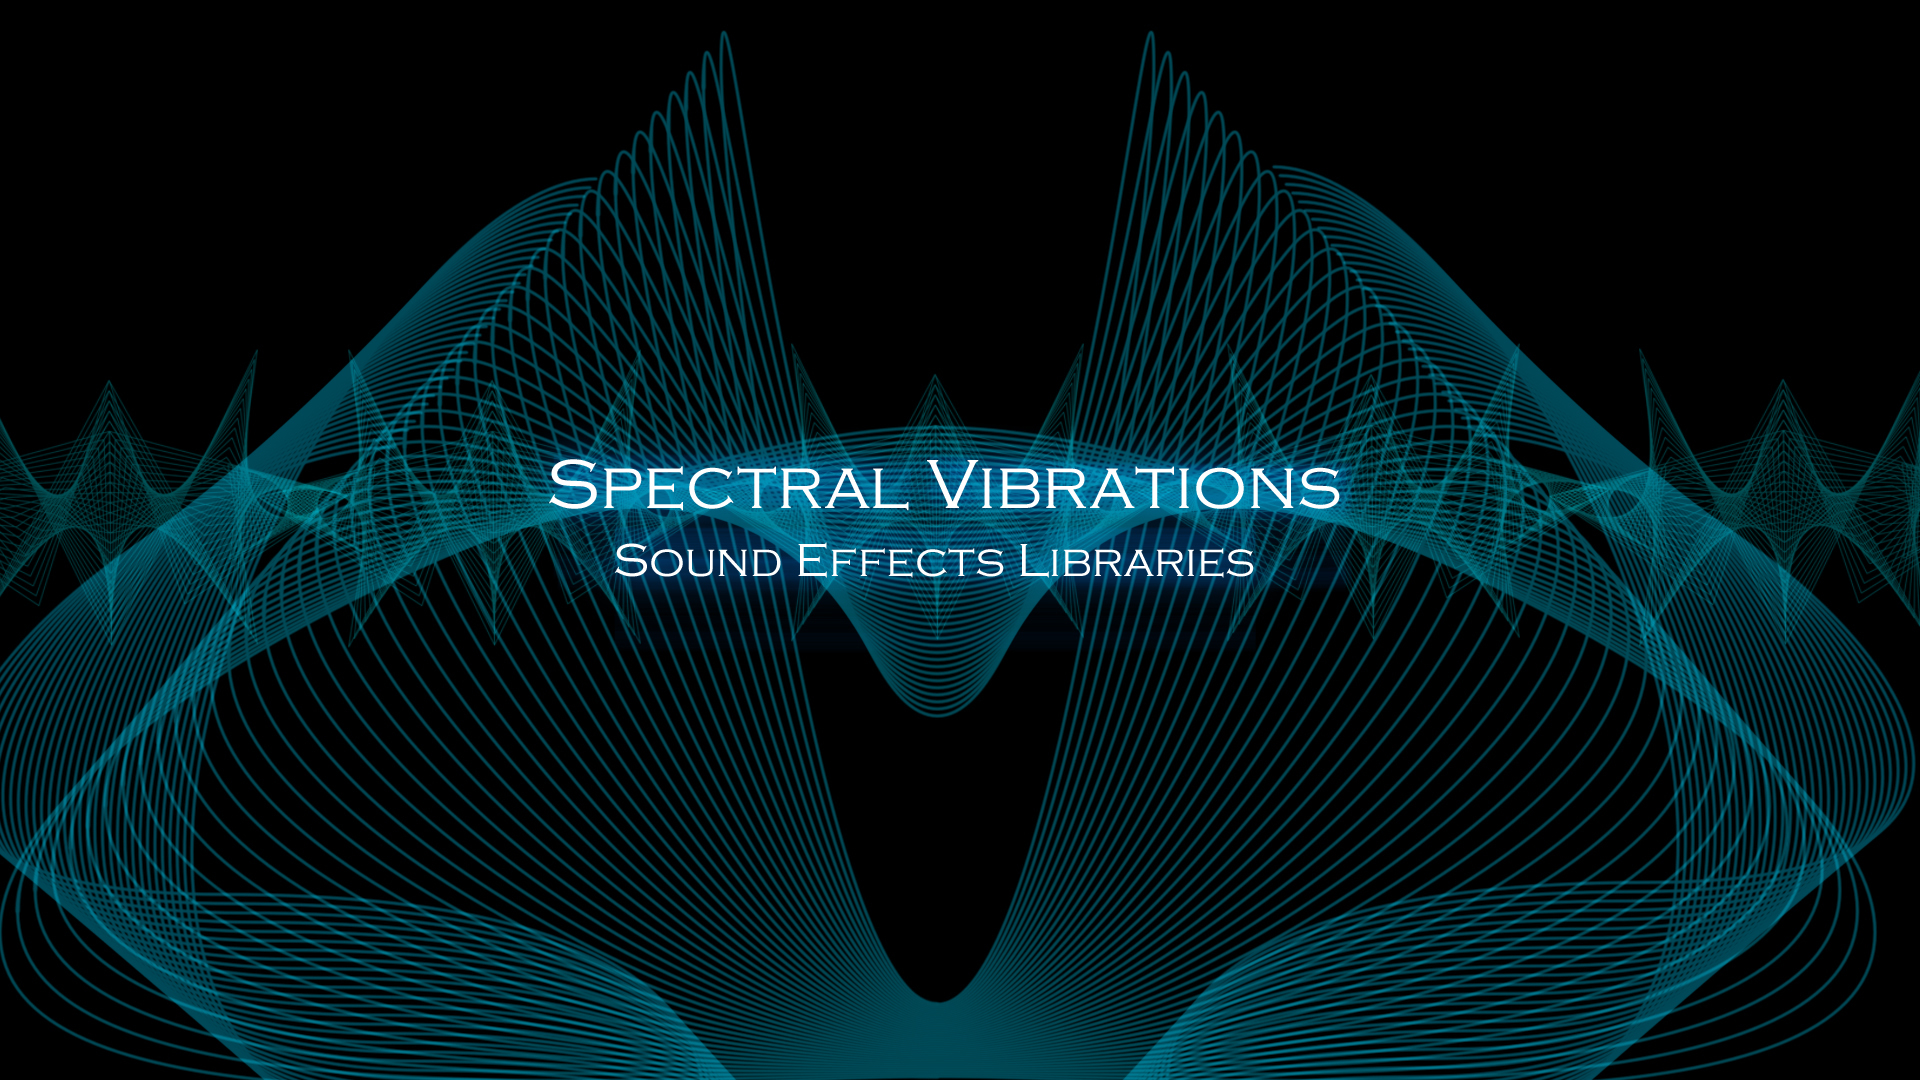 Spectral Vibrations - Independent Sound Effects Libraries by Graham Donnelly